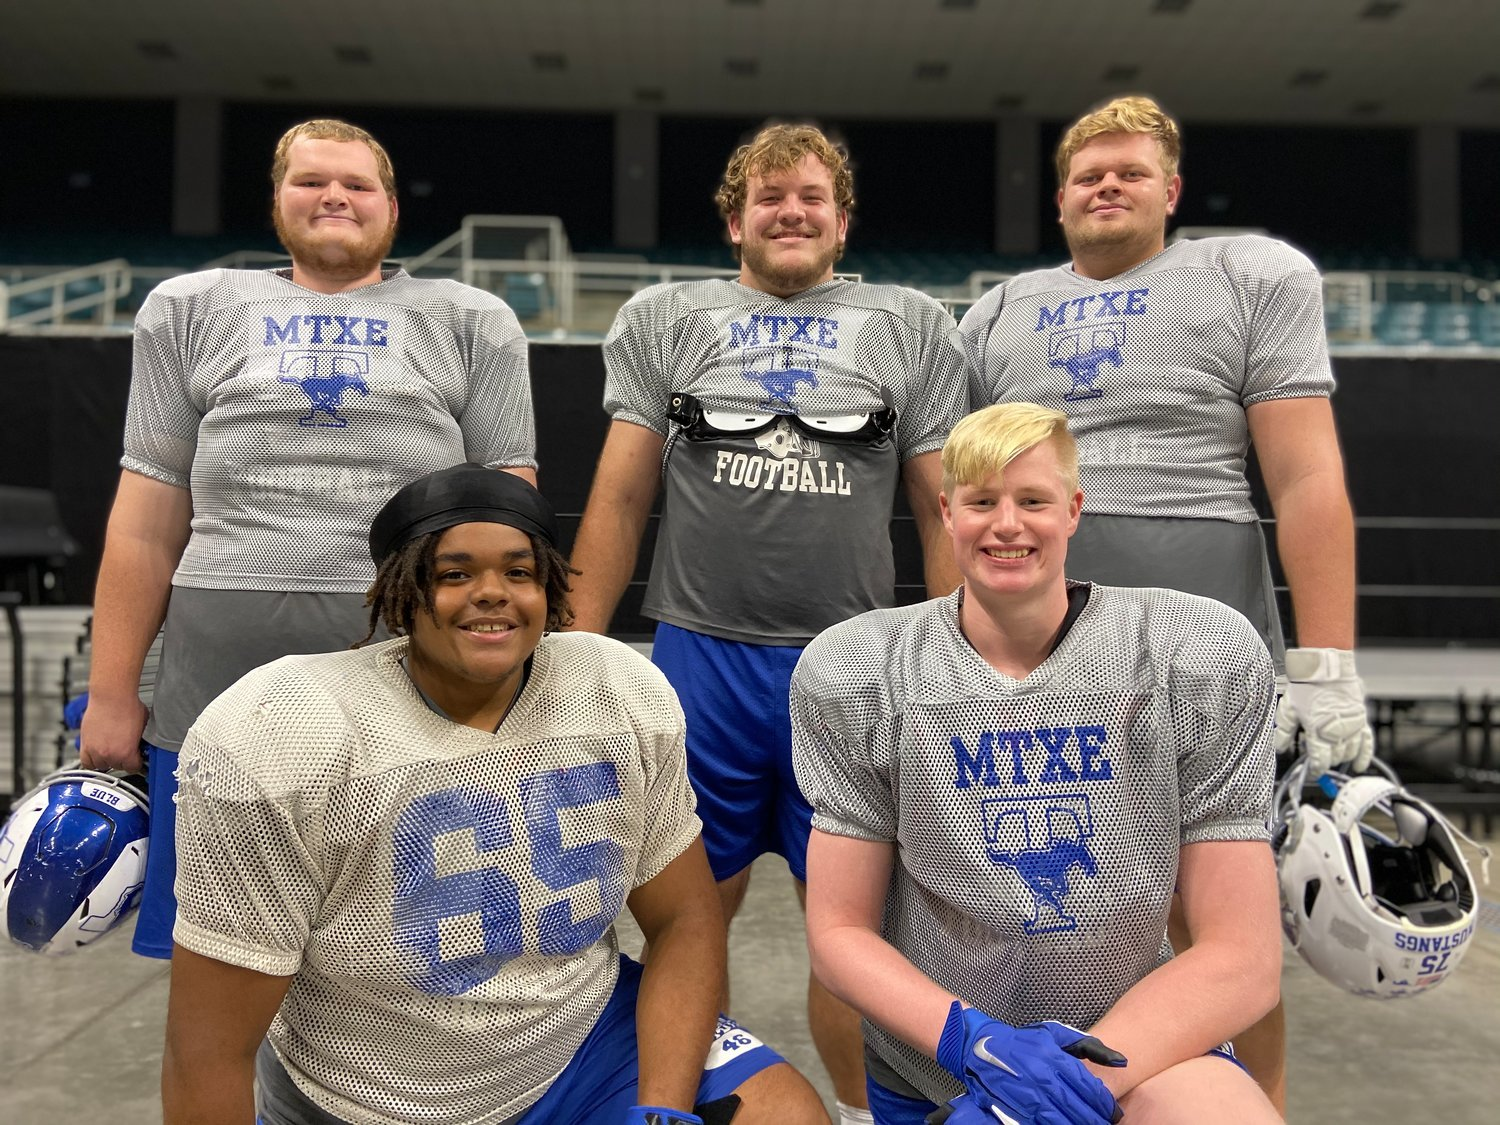 Taylor's offensive line was a major factor in its historic postseason run last year and returns three from last year's group to lead this year's squad. Pictured in the top row, from left, are recent graduate Michael Tulenko and seniors Bryce Foster and Hayden Conner. Kneeling in front, from left, are senior Abraham Okezie and recent graduate Gunnar Elliott.